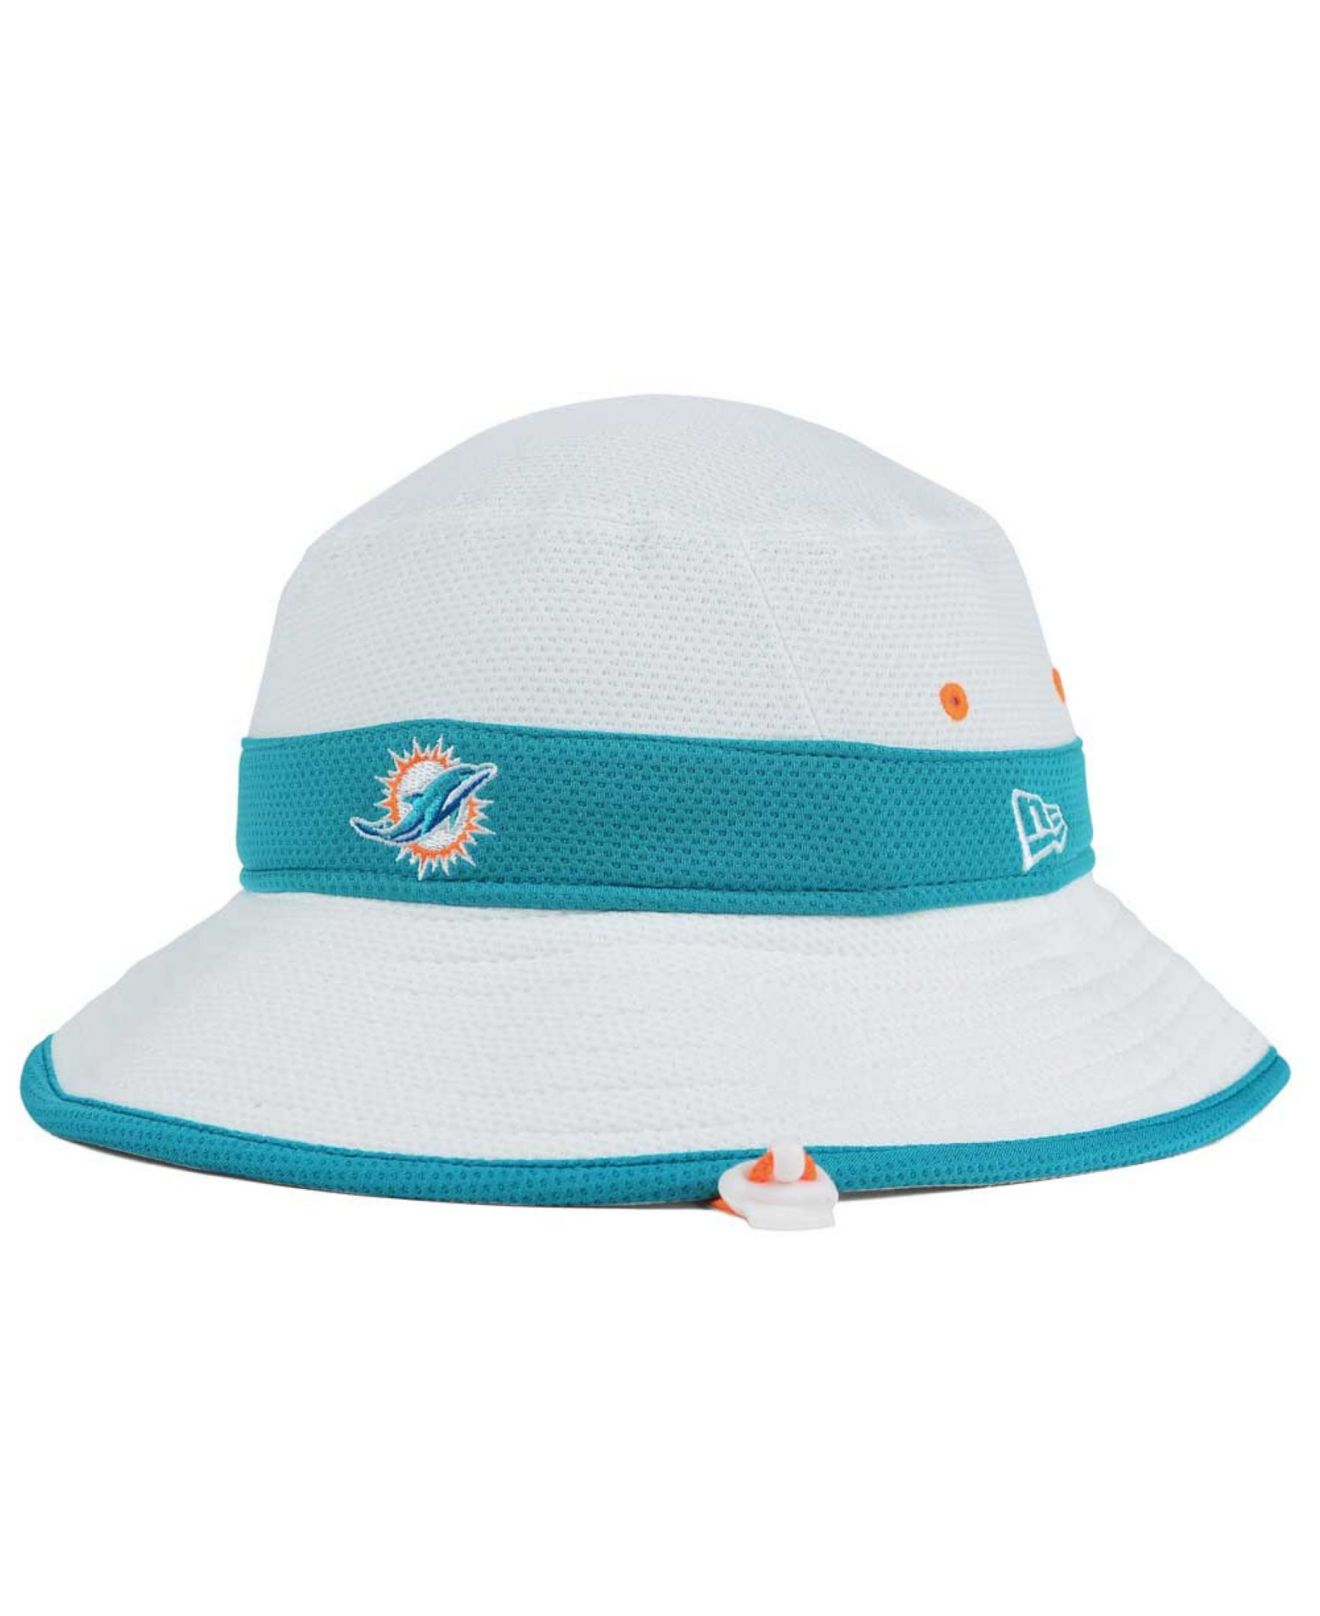 9e25318637f Lyst - KTZ Miami Dolphins Training Camp Official Bucket Hat in White ...